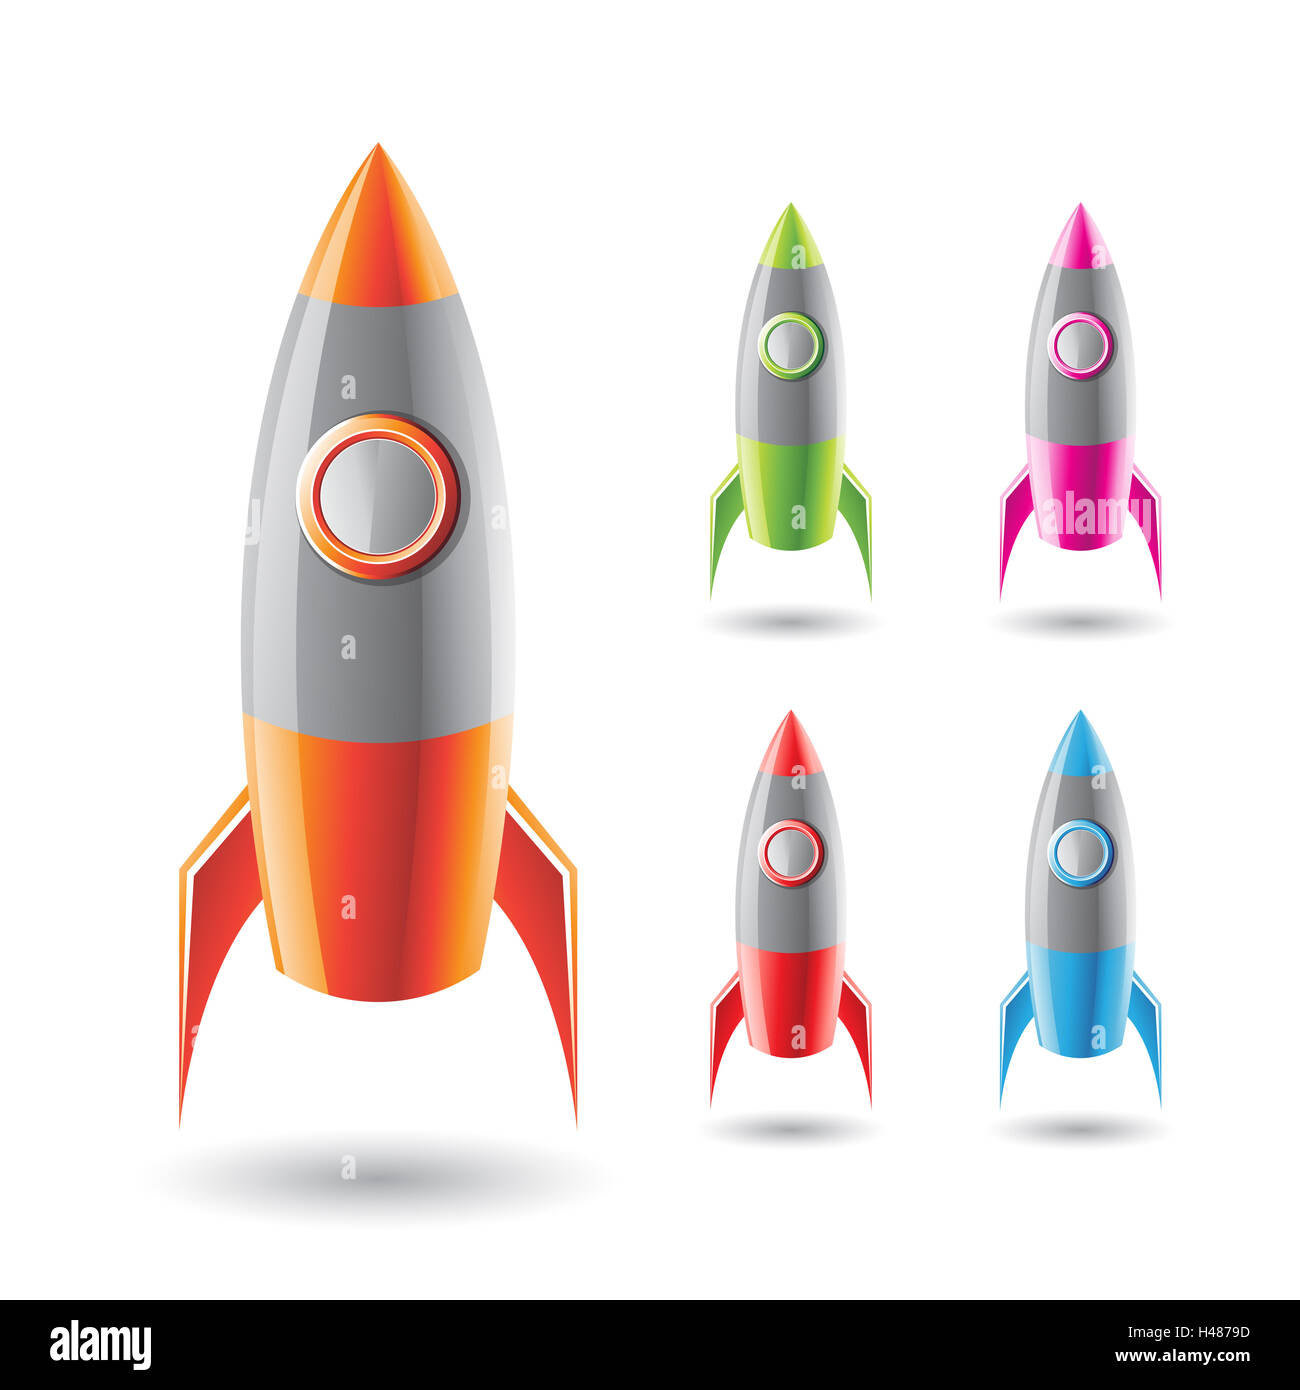 Vector Illustration of Colorful Rockets with Grey Body isolated on a White Background - Stock Image